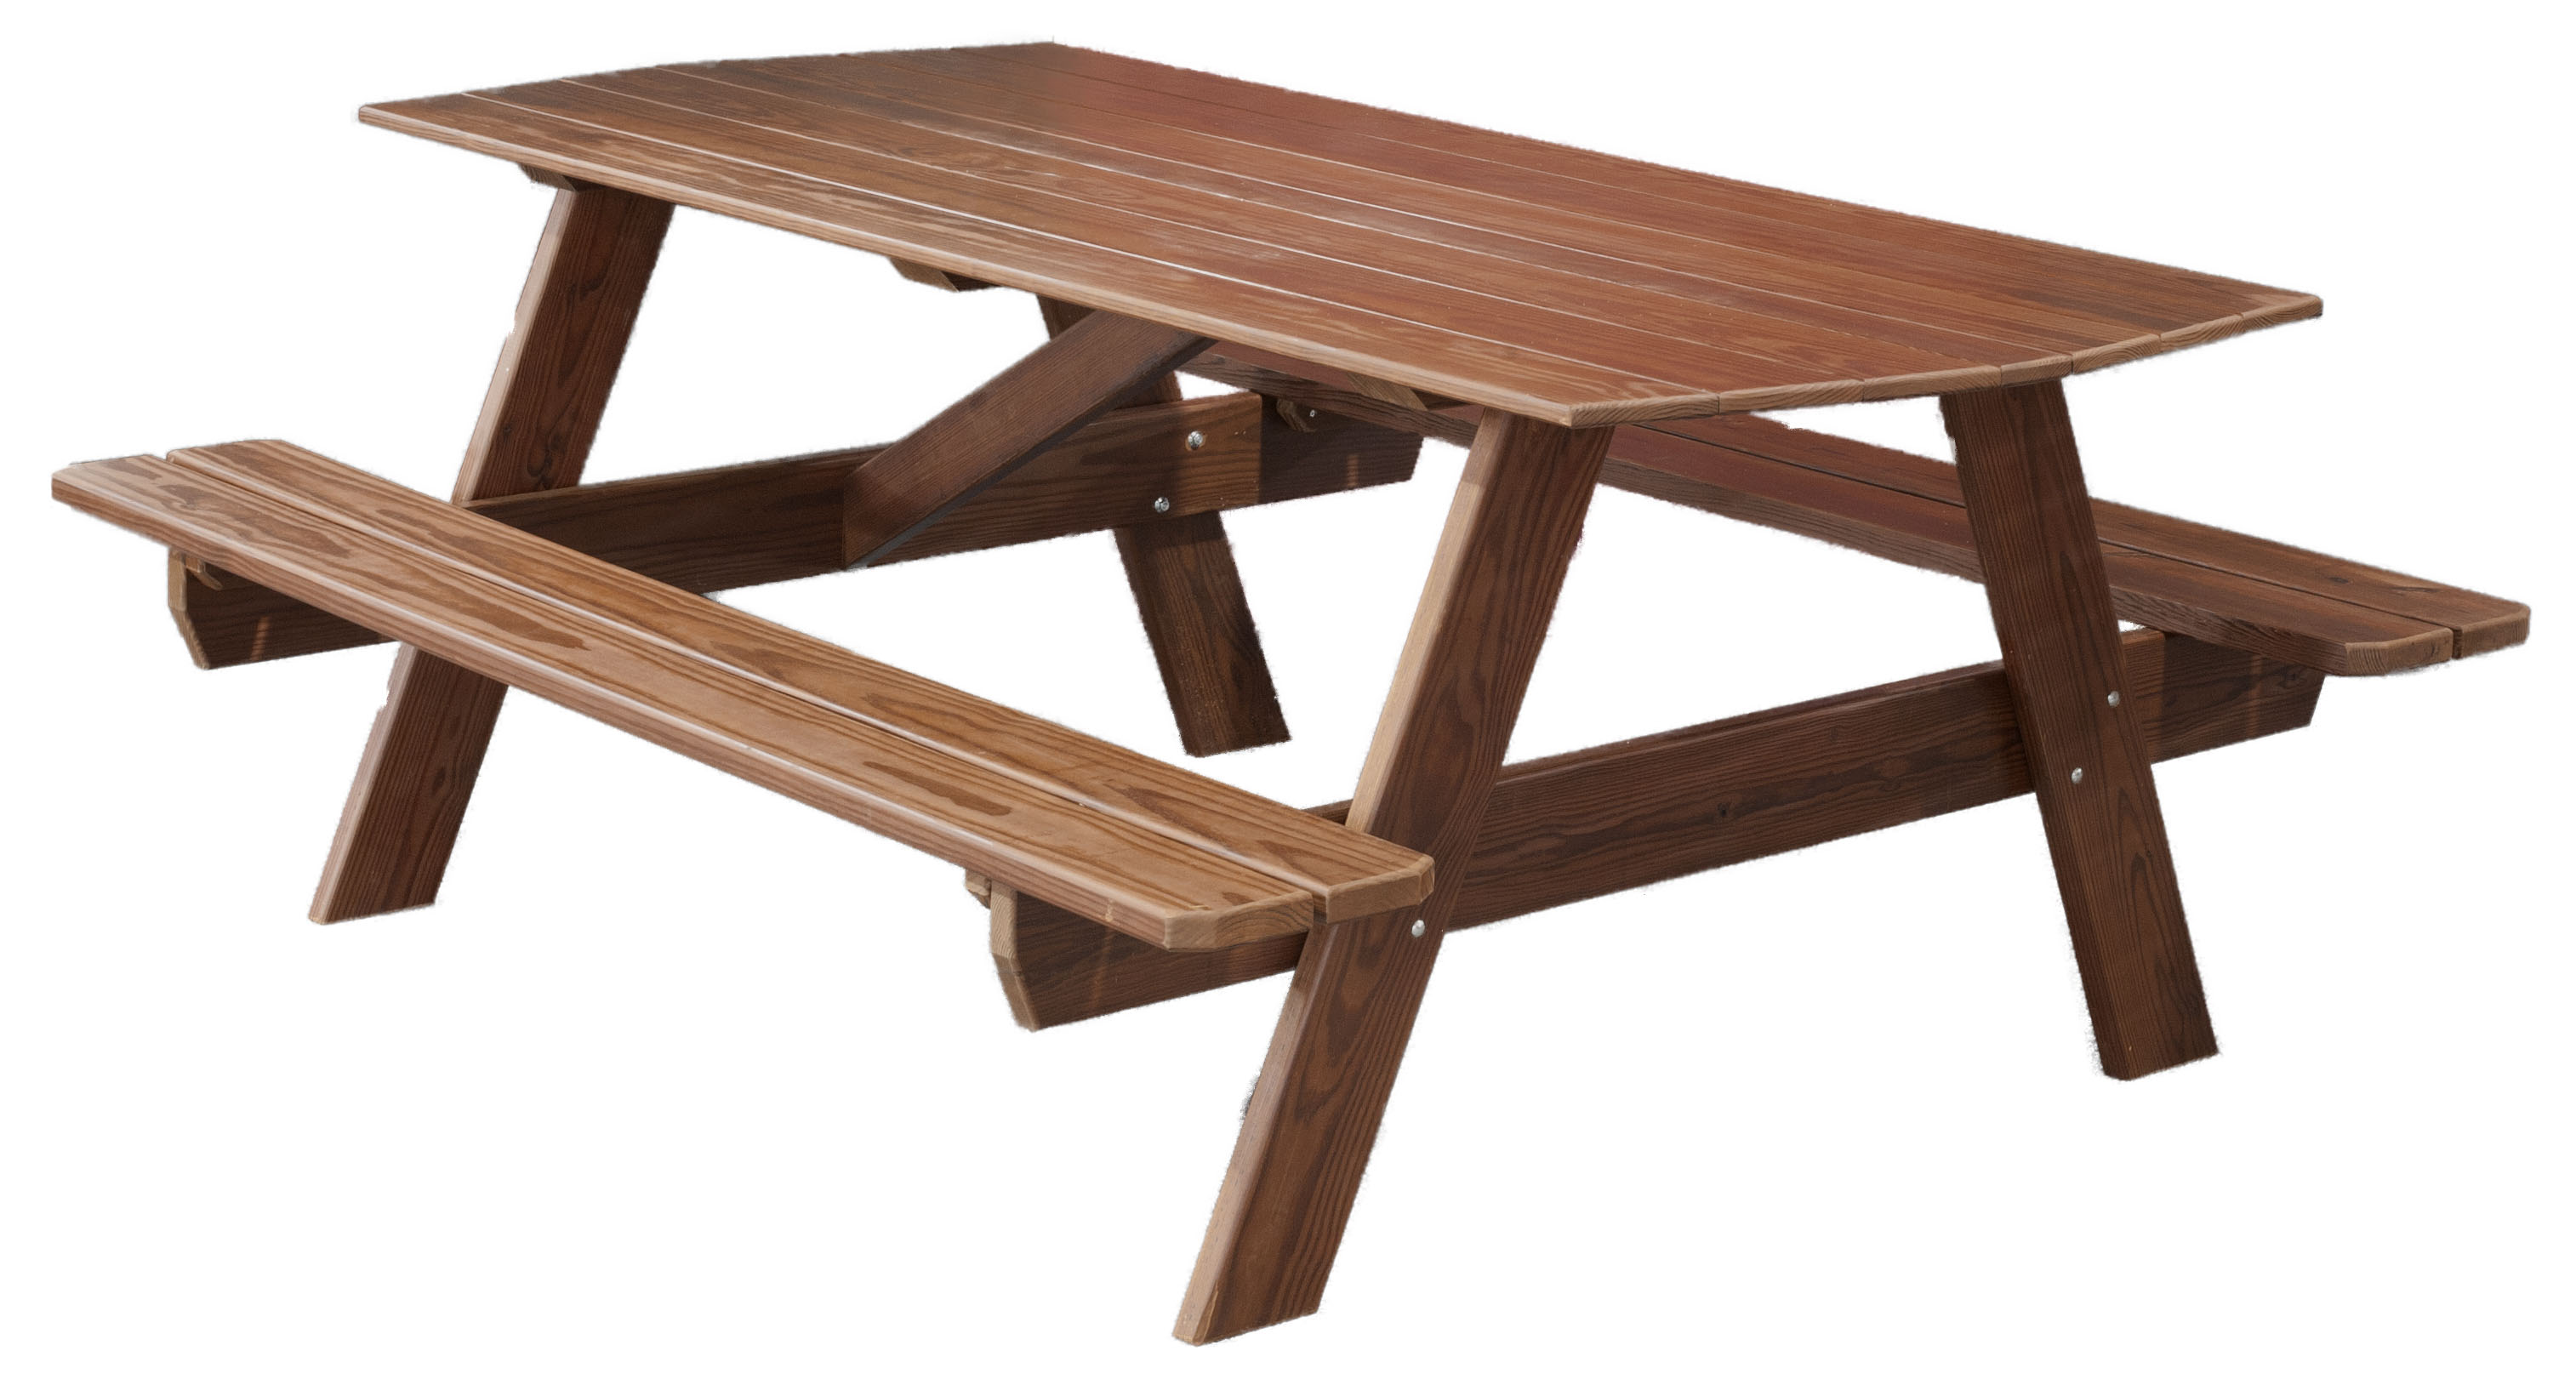 6' Picnic Table Product